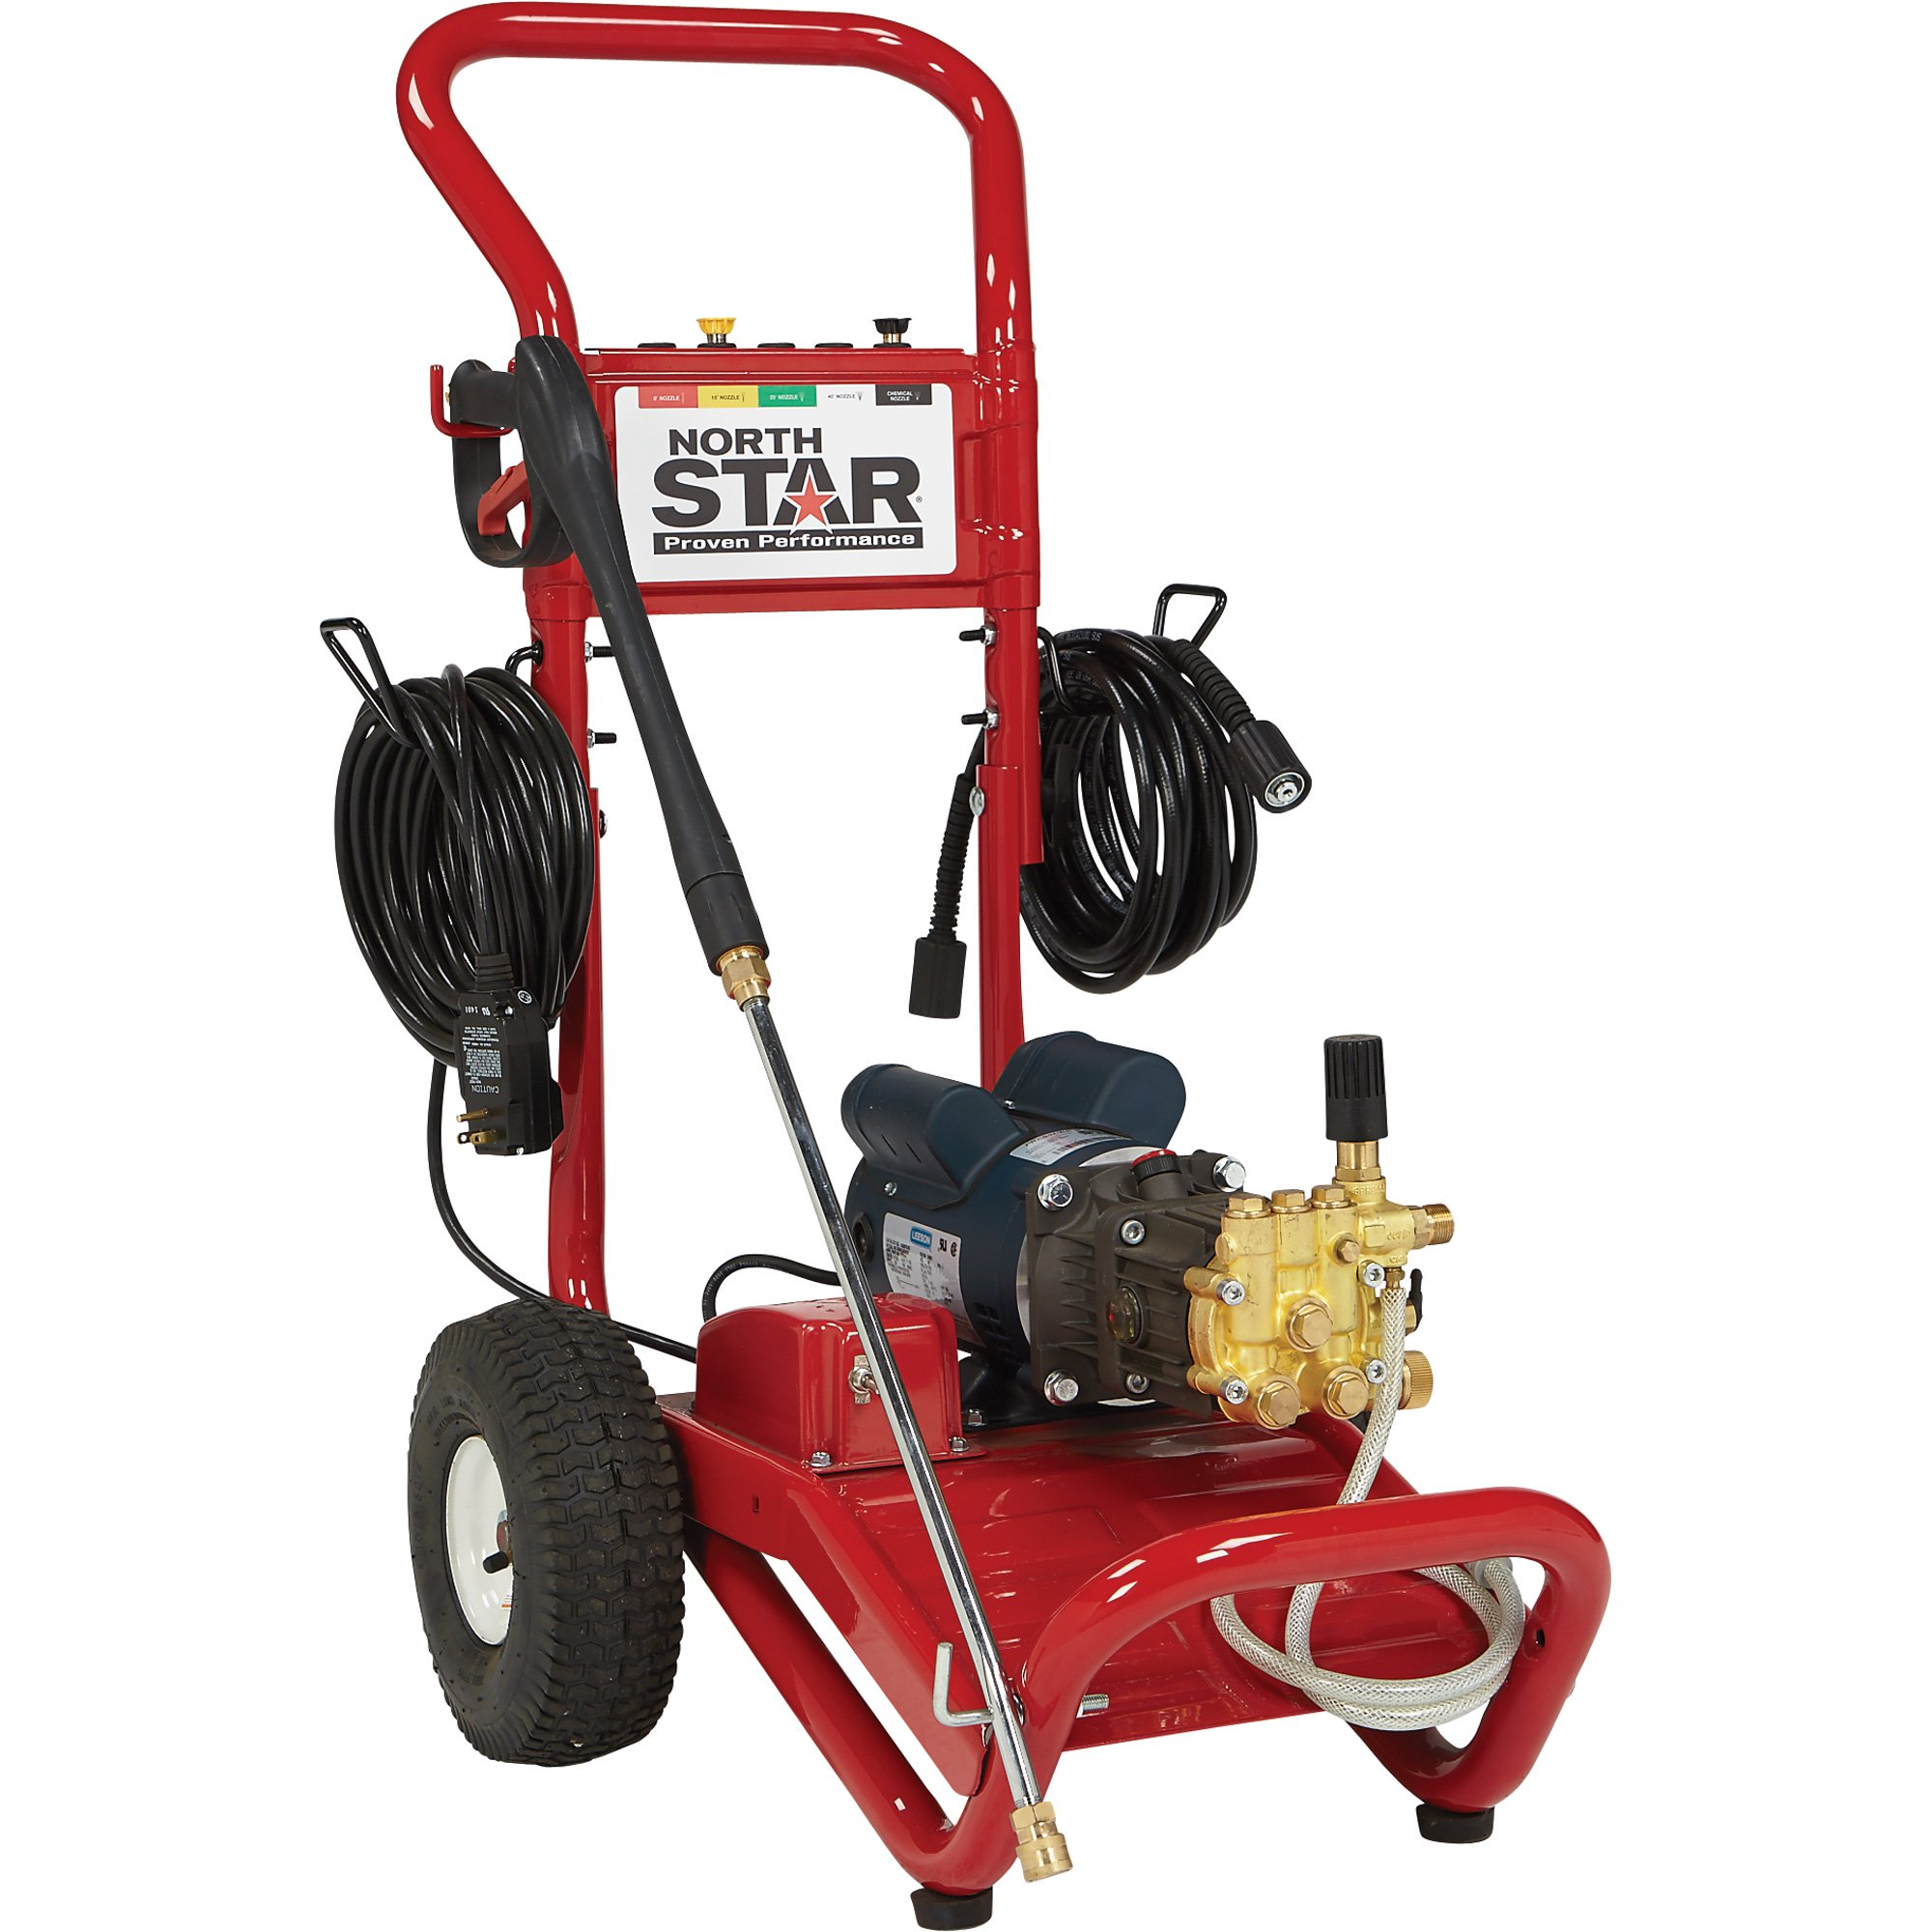 NorthStar 1573001 Electric Cold Water Pressure Washer - 1700 PSI, 1.5 GPM, 120 Volt - FREE SHIPPING